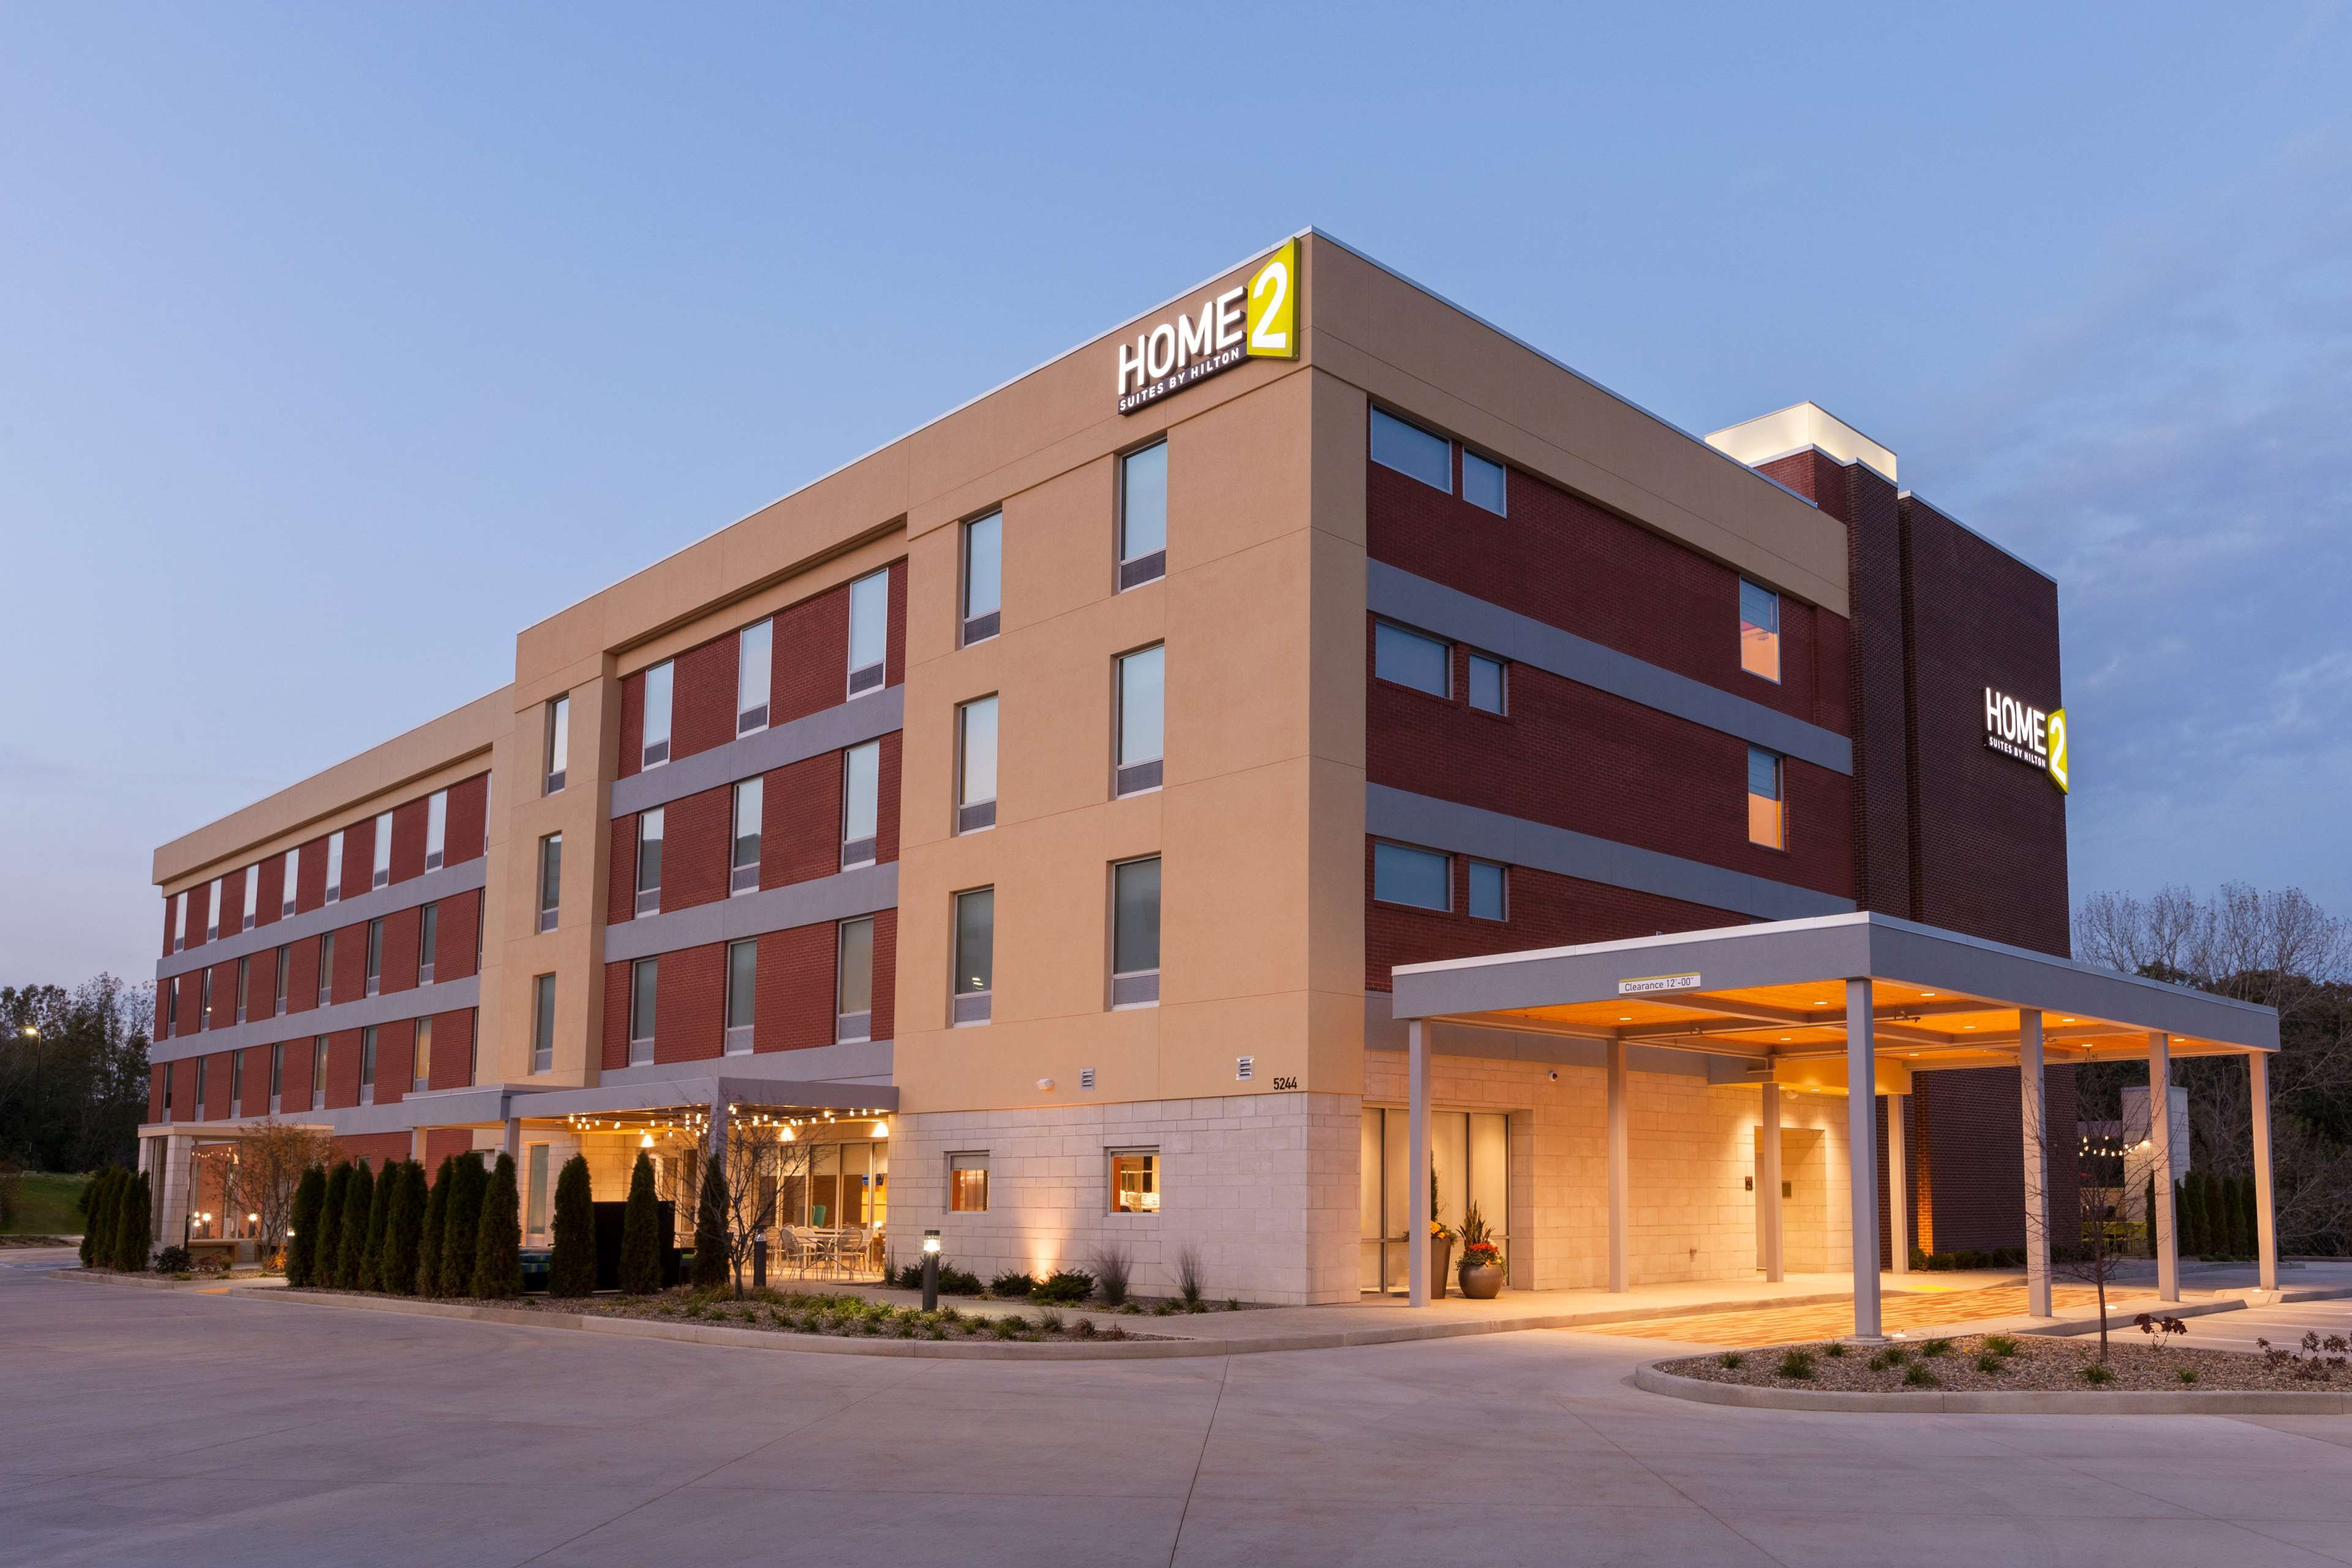 Home2 Suites By Hilton Youngstown West - Austintown image 1